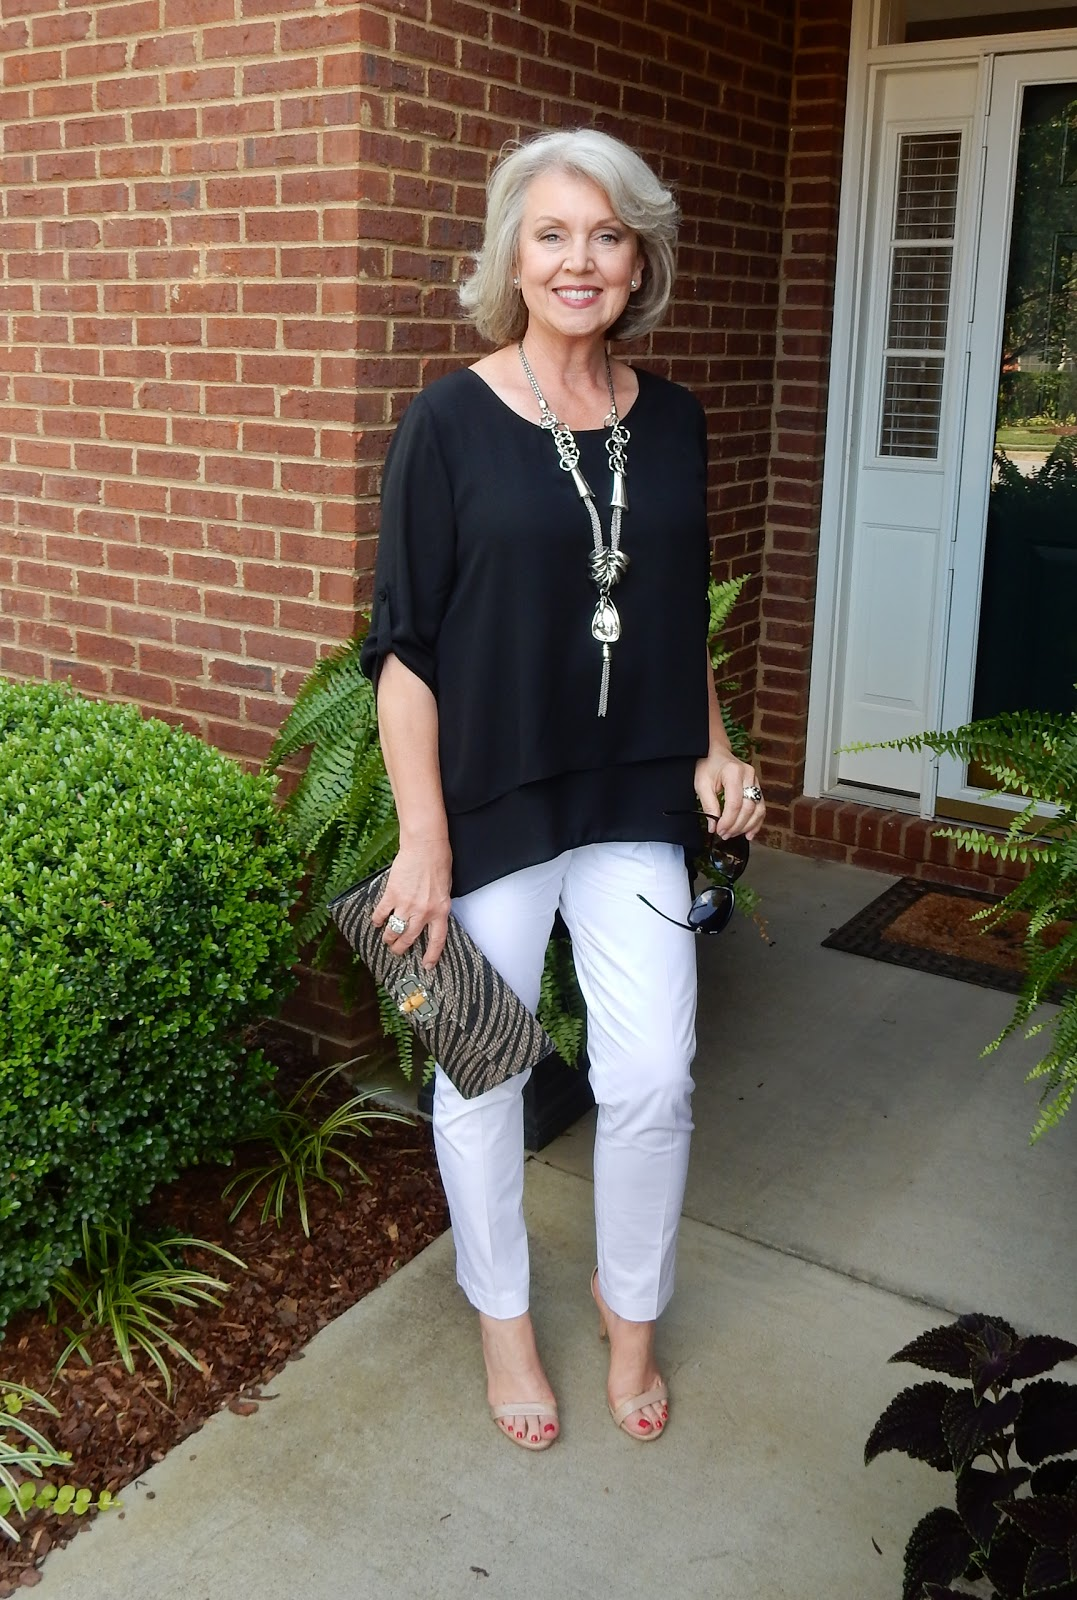 single women over 50 in white mills Meet single bbw women in white mills is your life ready to meet a big beautiful single woman to make your heart beat again over 30 million single people are using zoosk to find people to date.